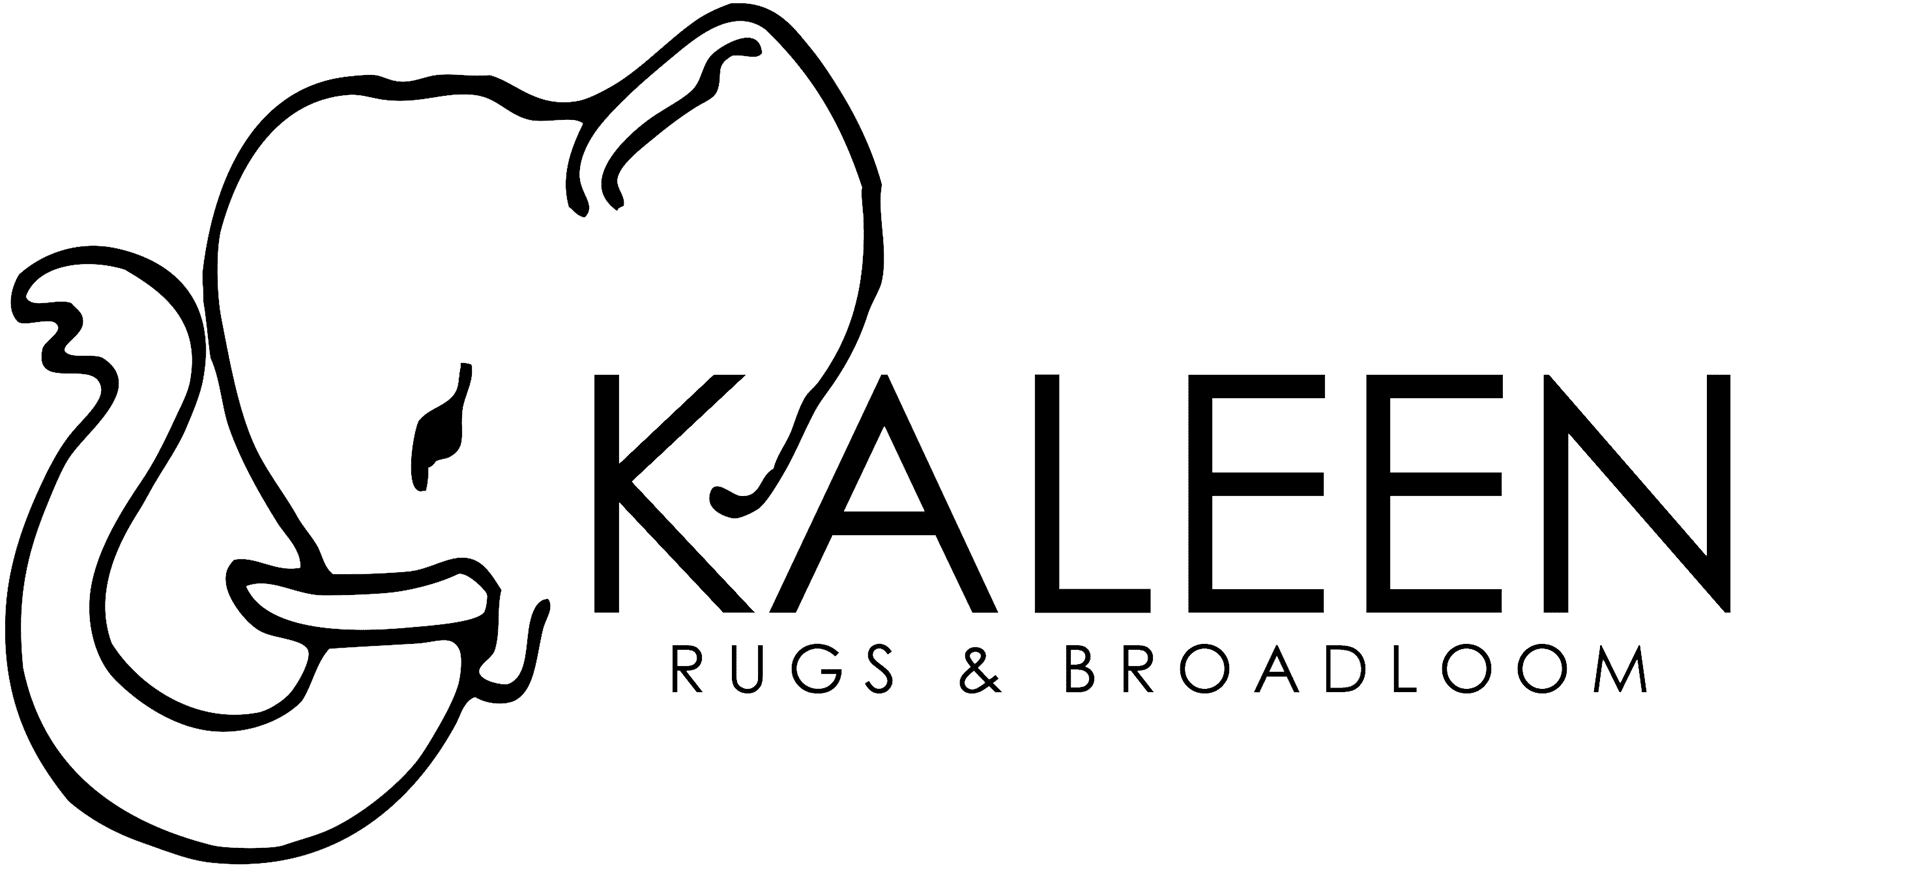 Kaleen Rugs is available in Palm Beach Gardens, FL from California Designs